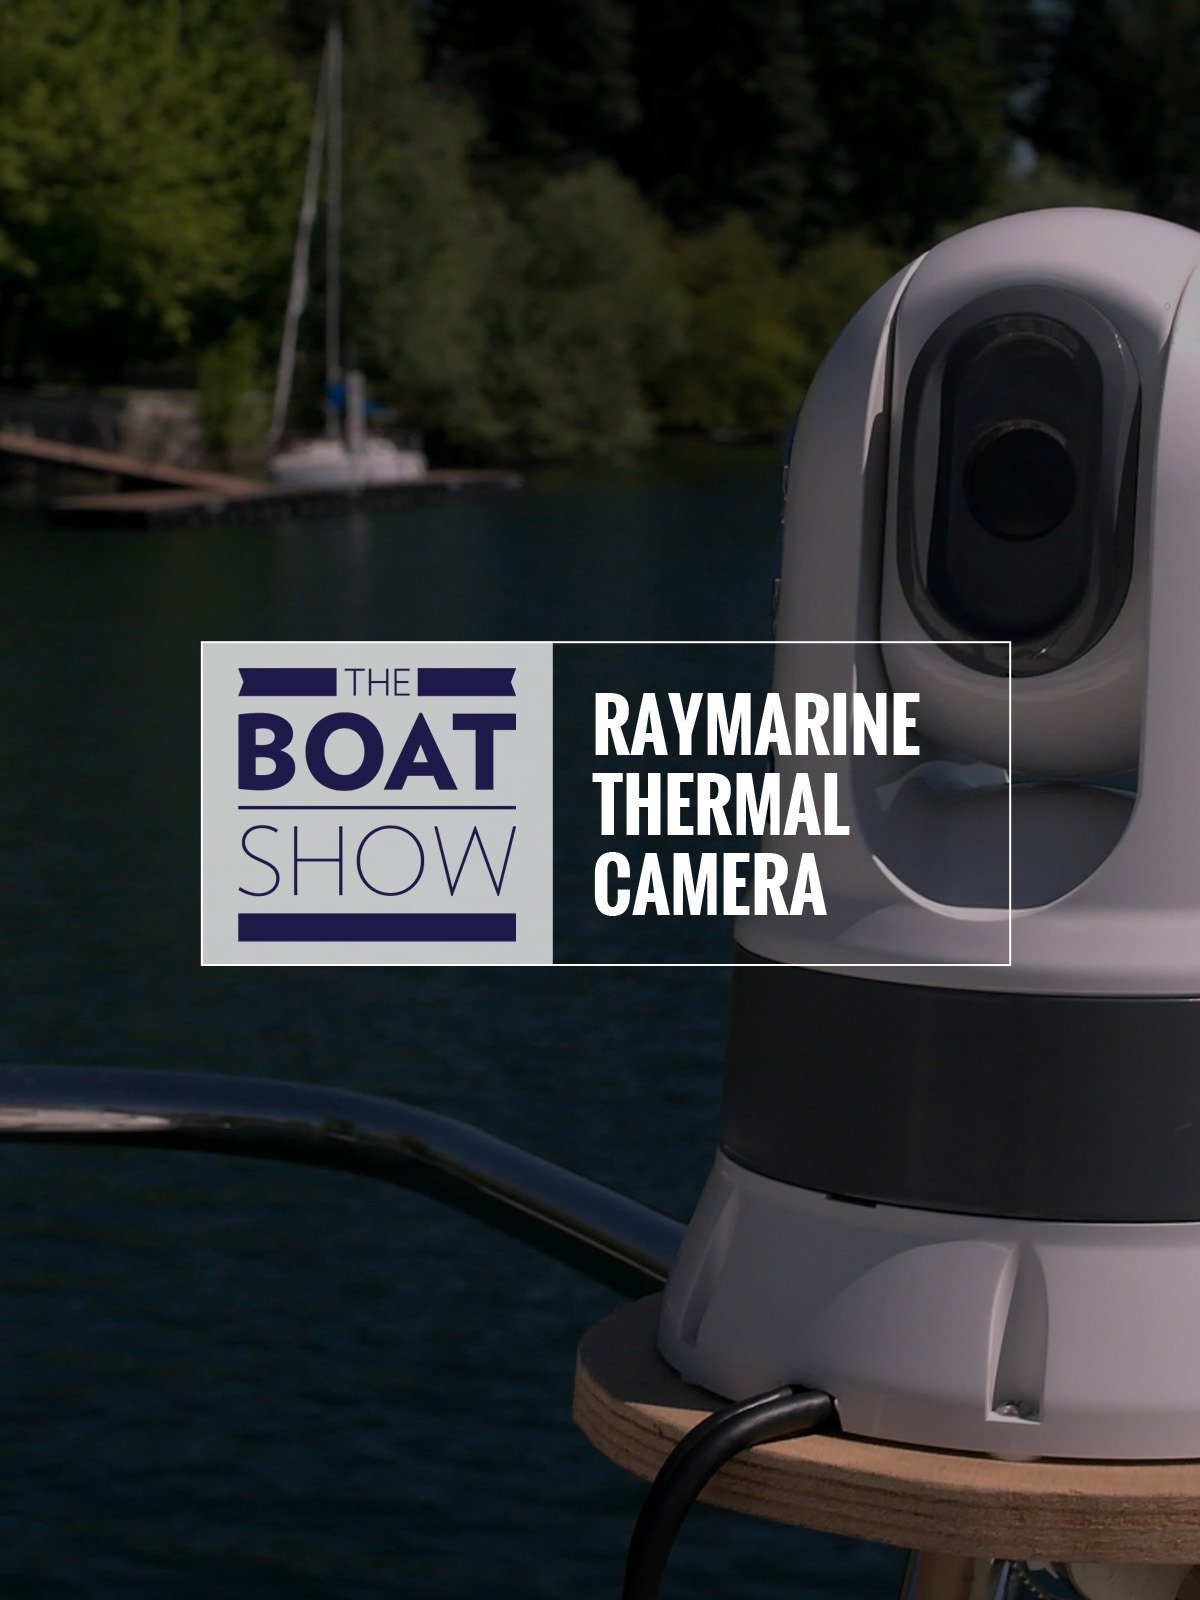 Review: Raymarine Axiom and Flir thermal camera - The Boat Show on Amazon Prime Video UK